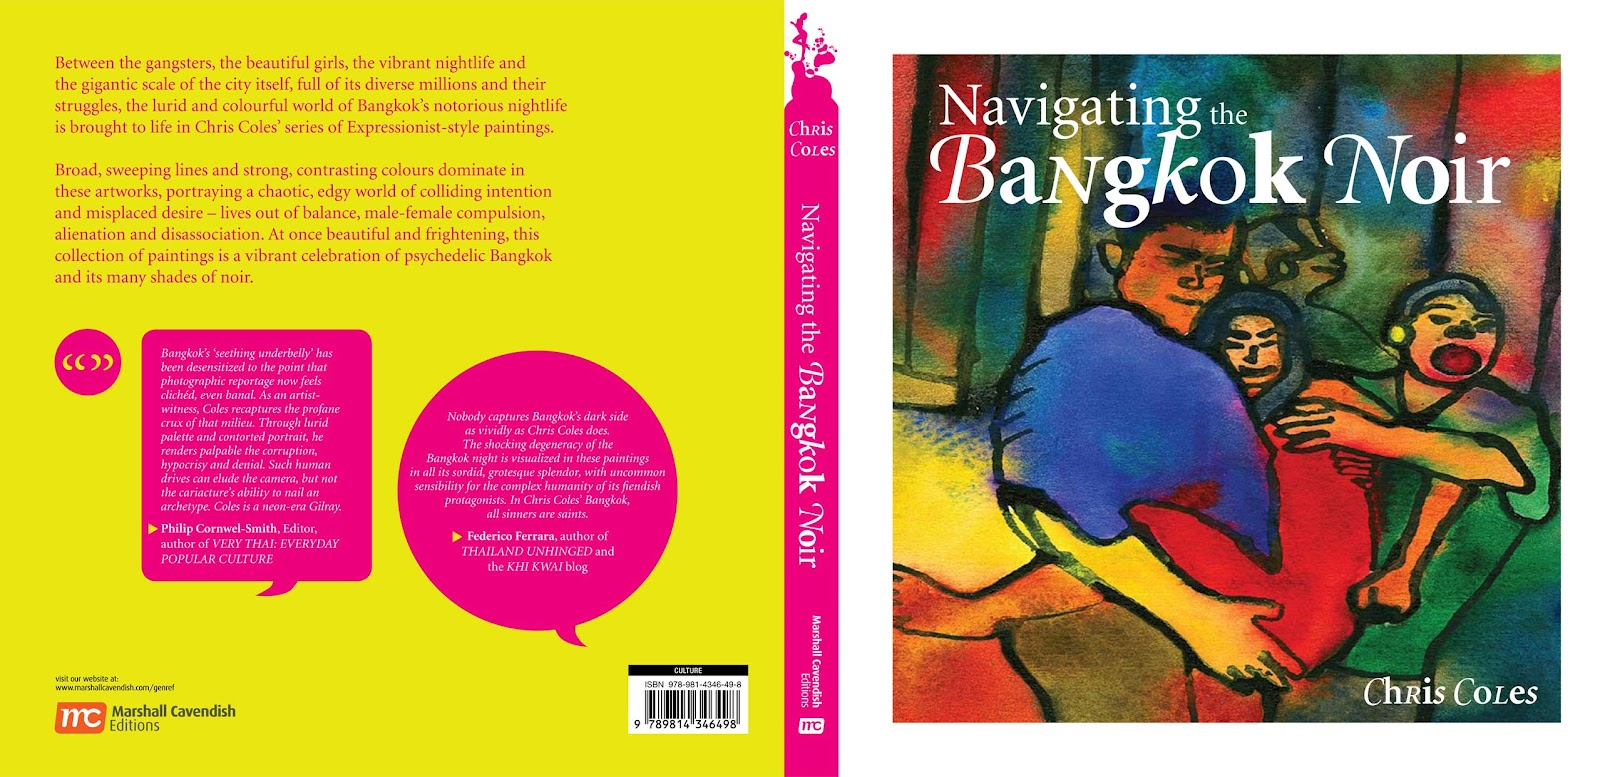 Book Covers Front And Back ~ Navigating the bangkok noir front and back cover of book